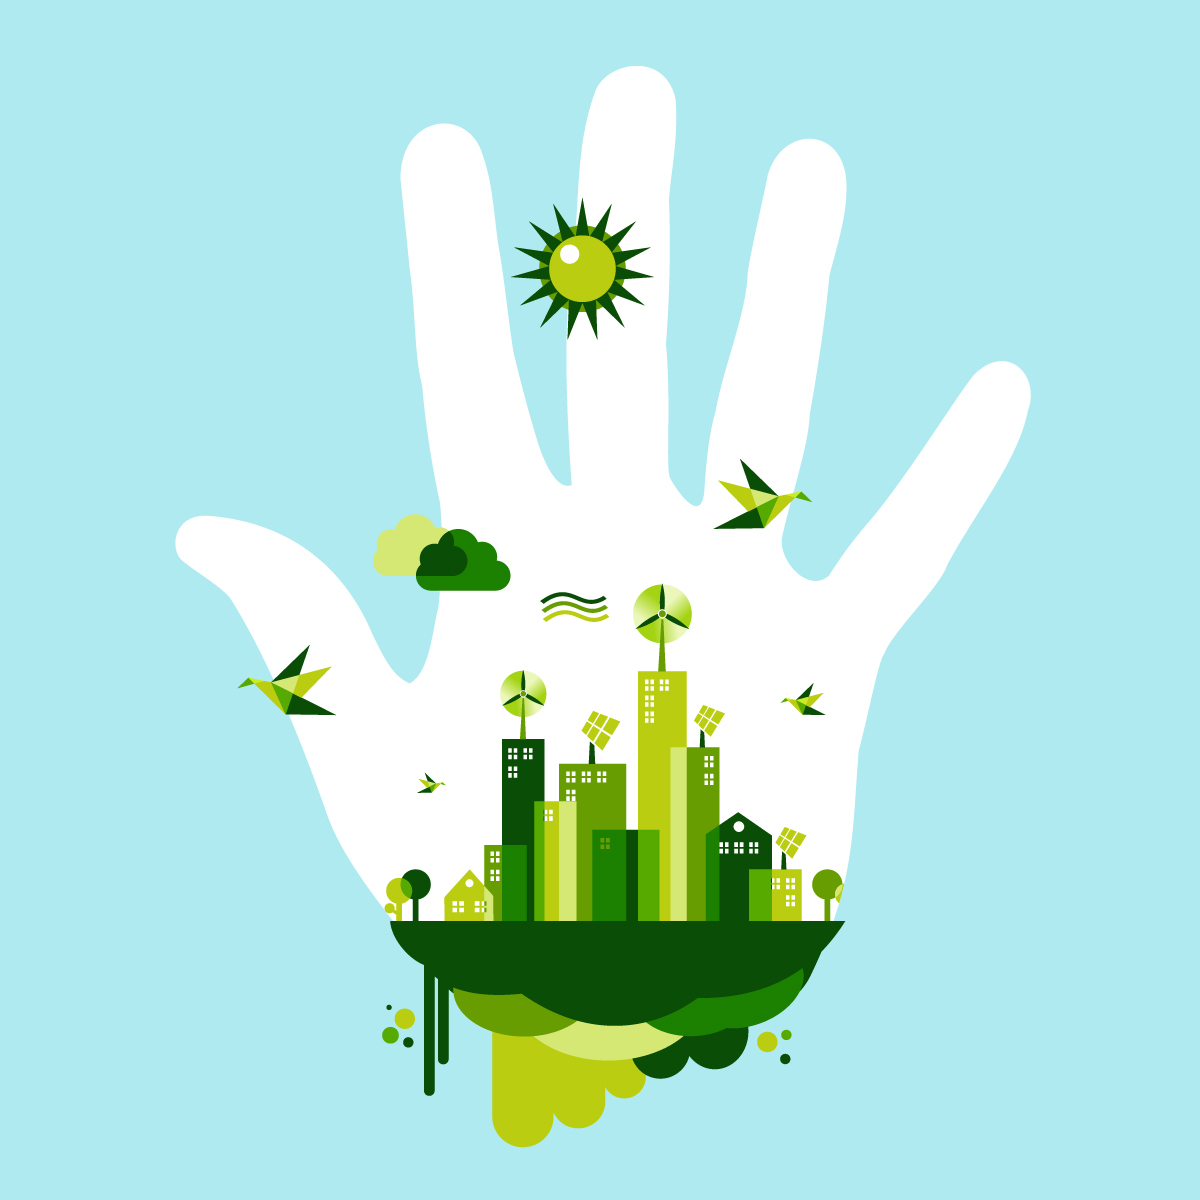 Most Common Misconceptions of Corporations towards Sustainability